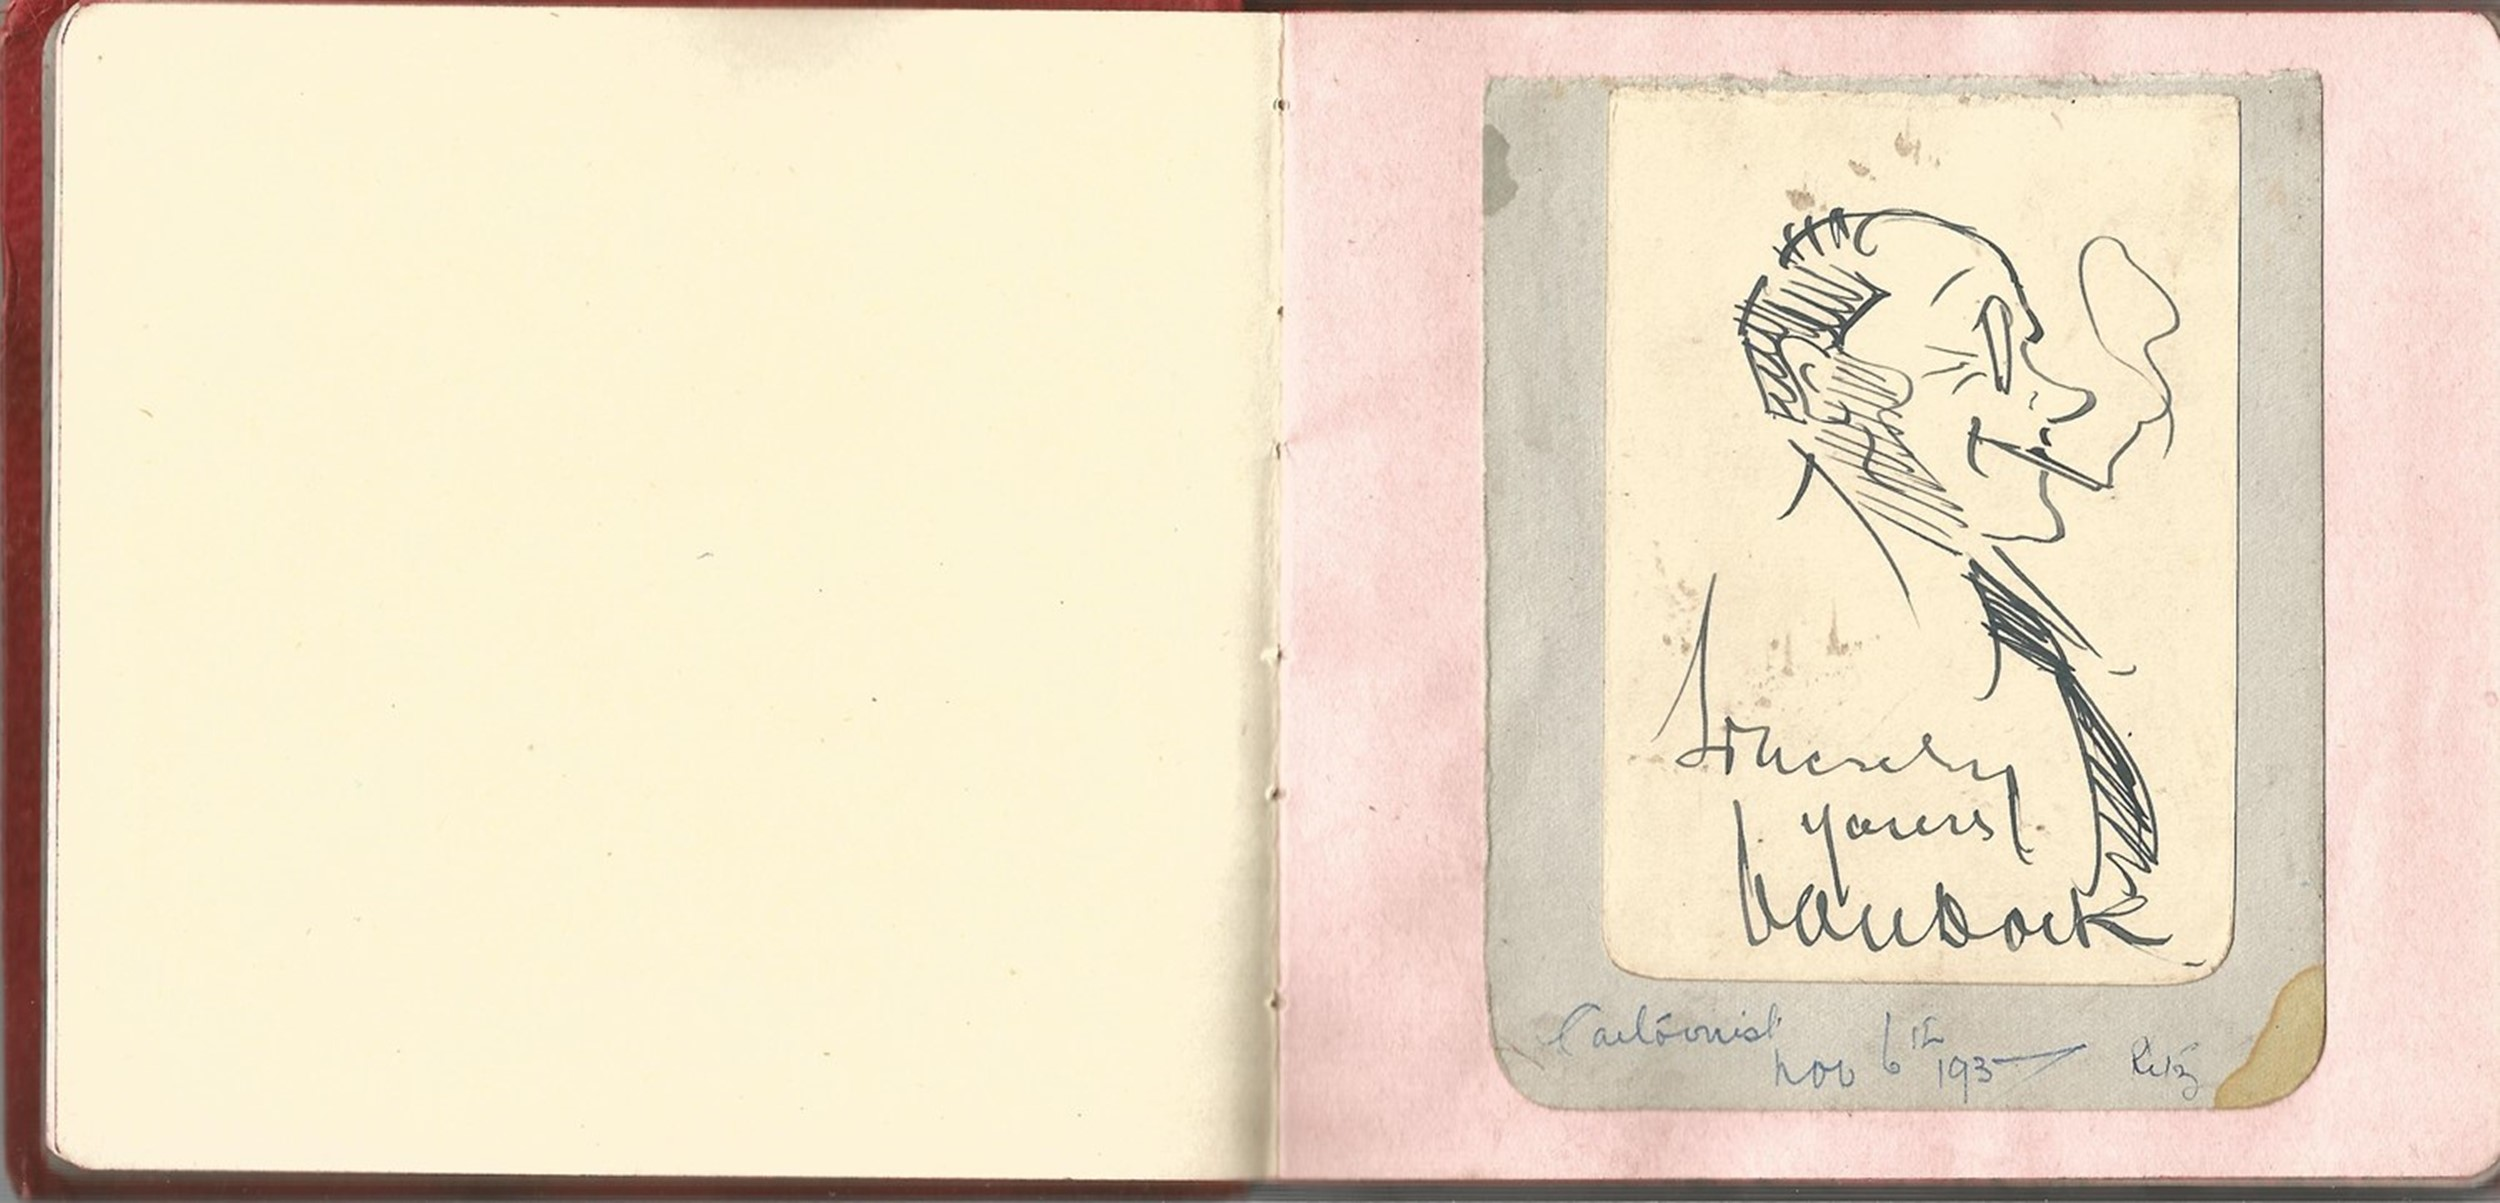 Autograph book. 12 signatures all on individual pages. Amongst signatures are Billy Cotton, Irene - Image 2 of 2